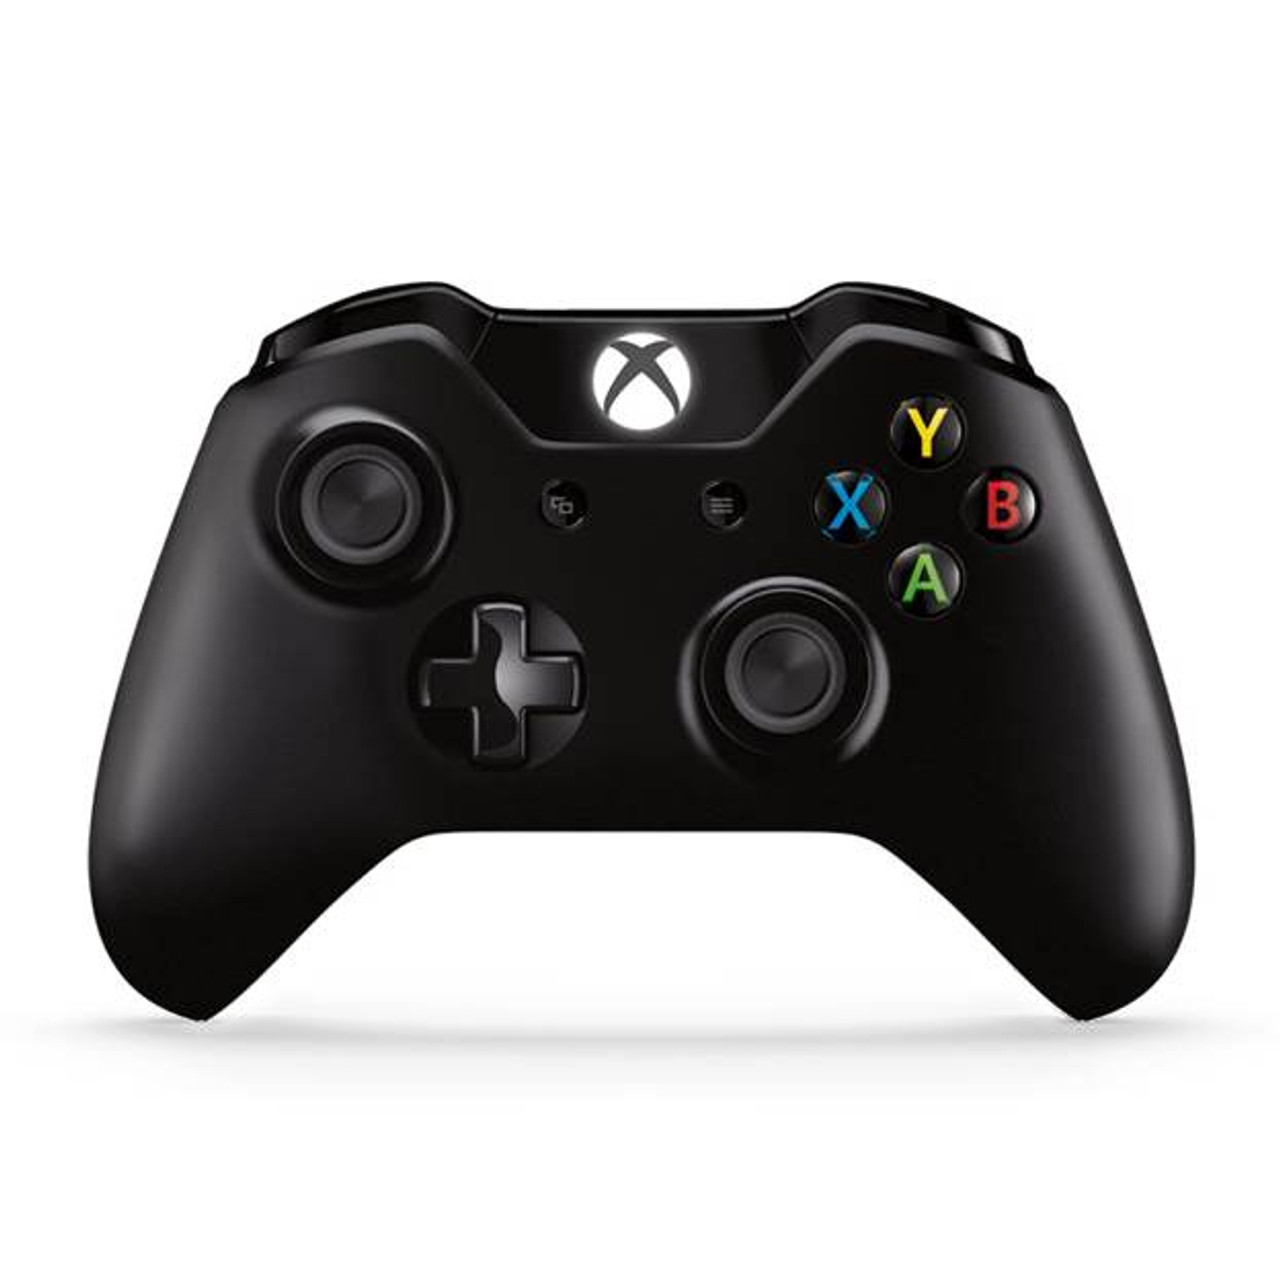 Image for Microsoft Xbox One Wireless Controller - Black CX Computer Superstore